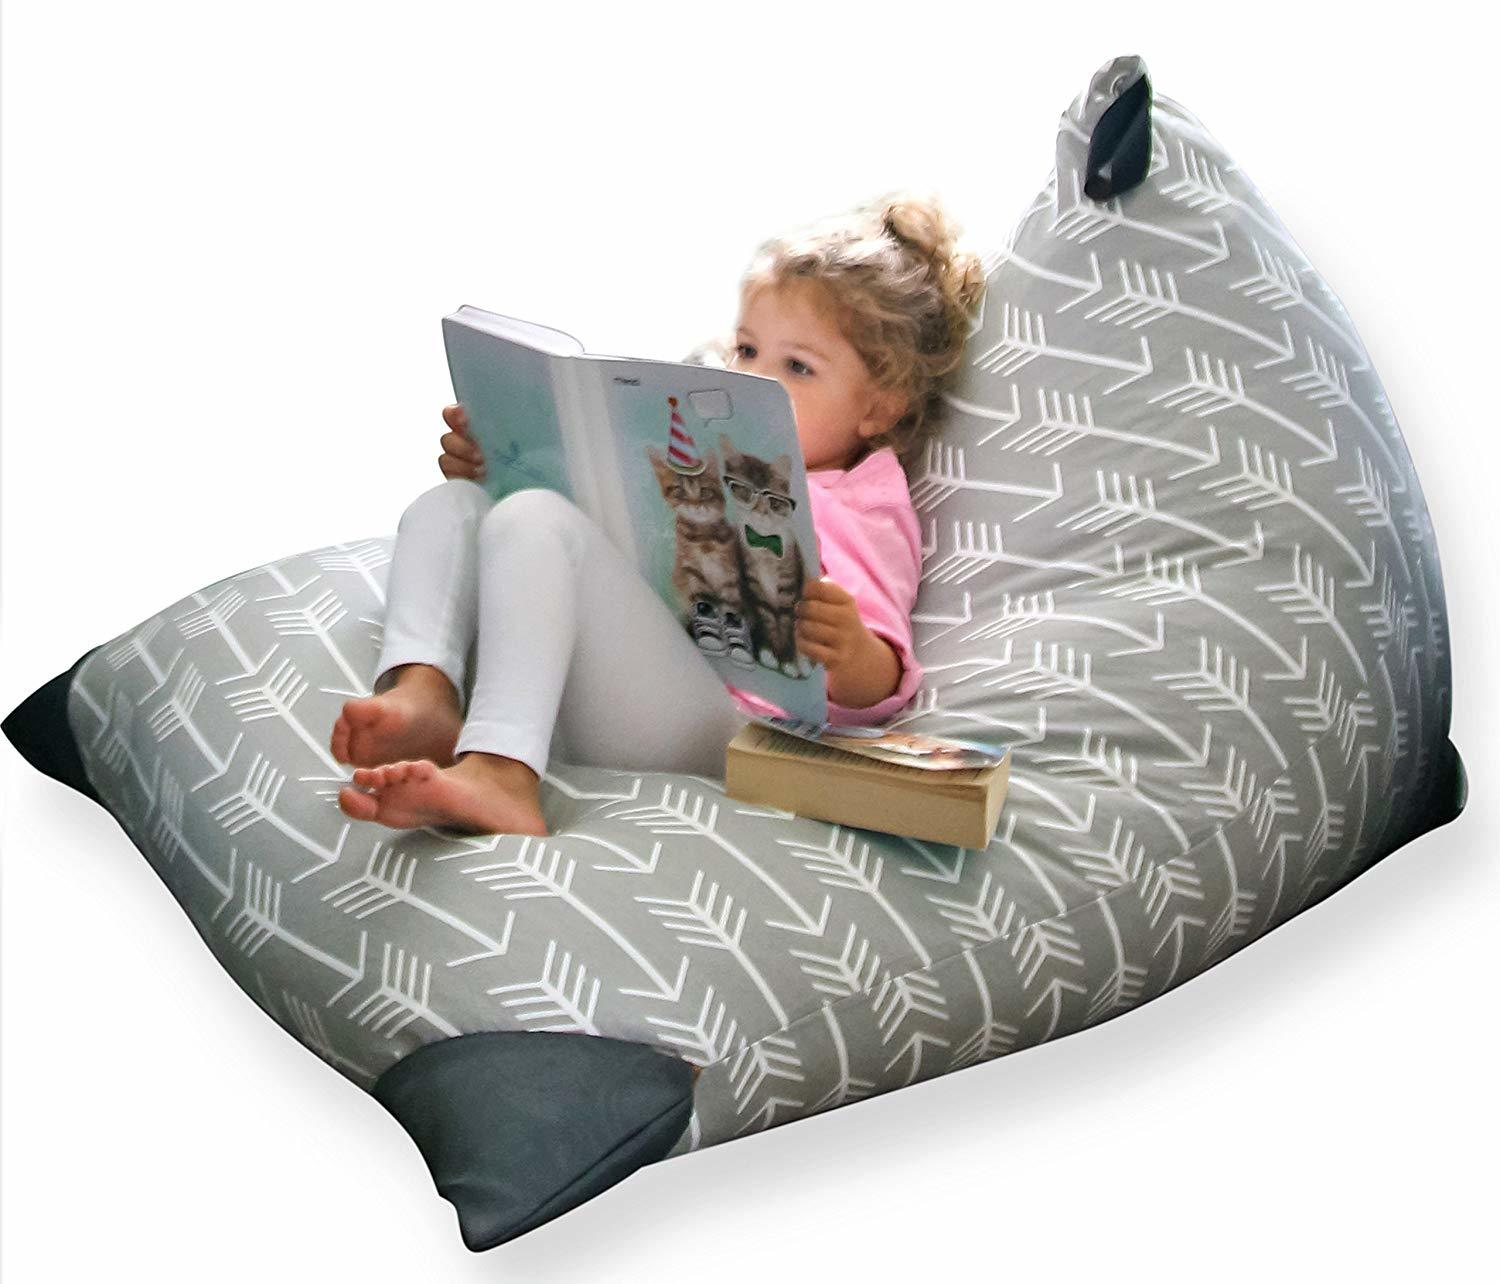 Mini Bean Bag Chair Best Bean Bag Chairs For Adults An Kids Cuddly Home Advisors